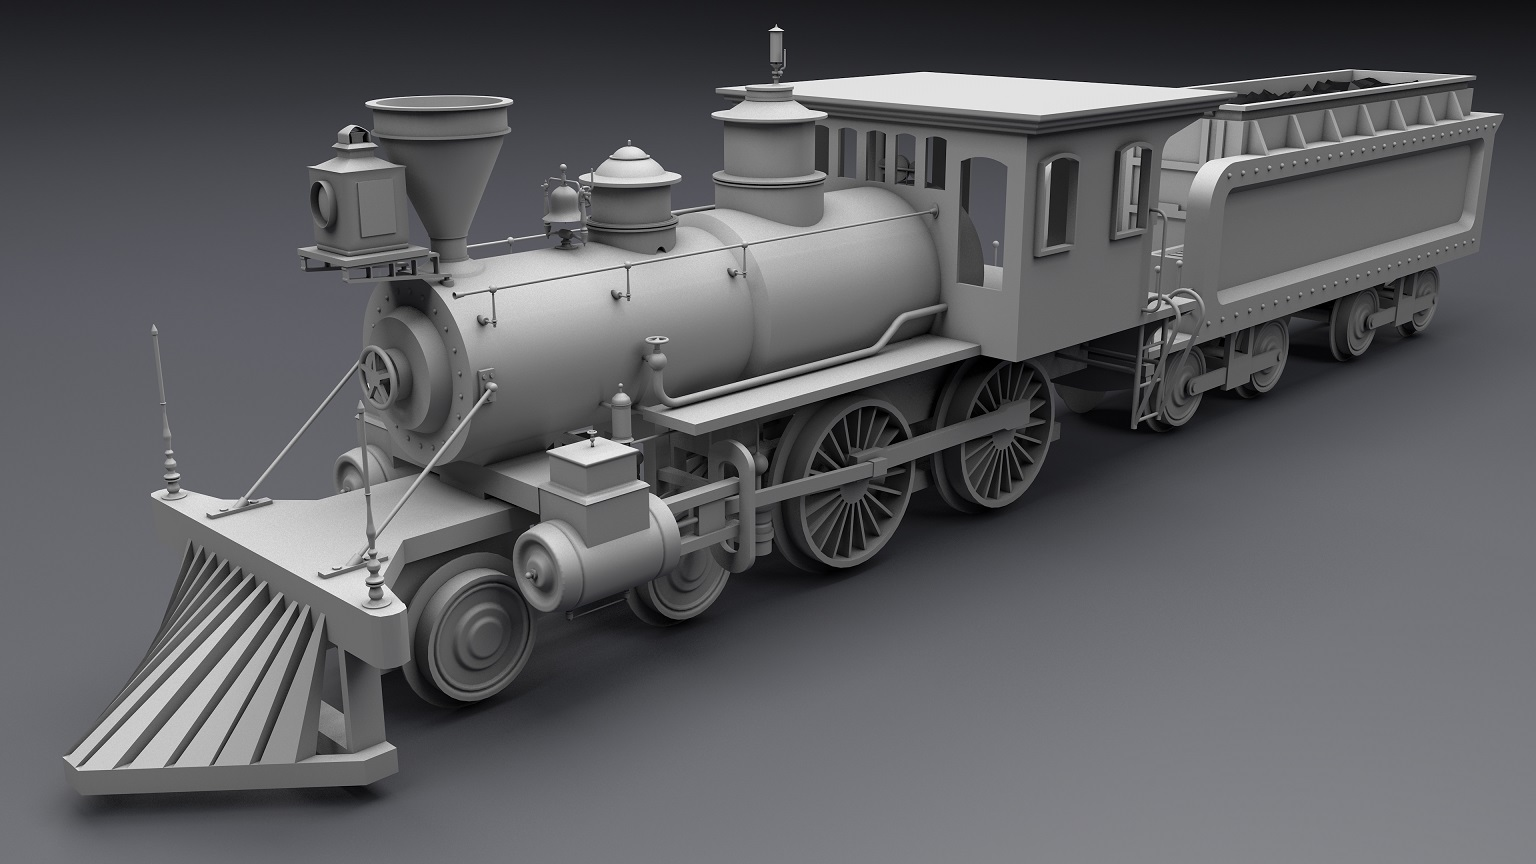 Old Steam Locomotive - Extended License